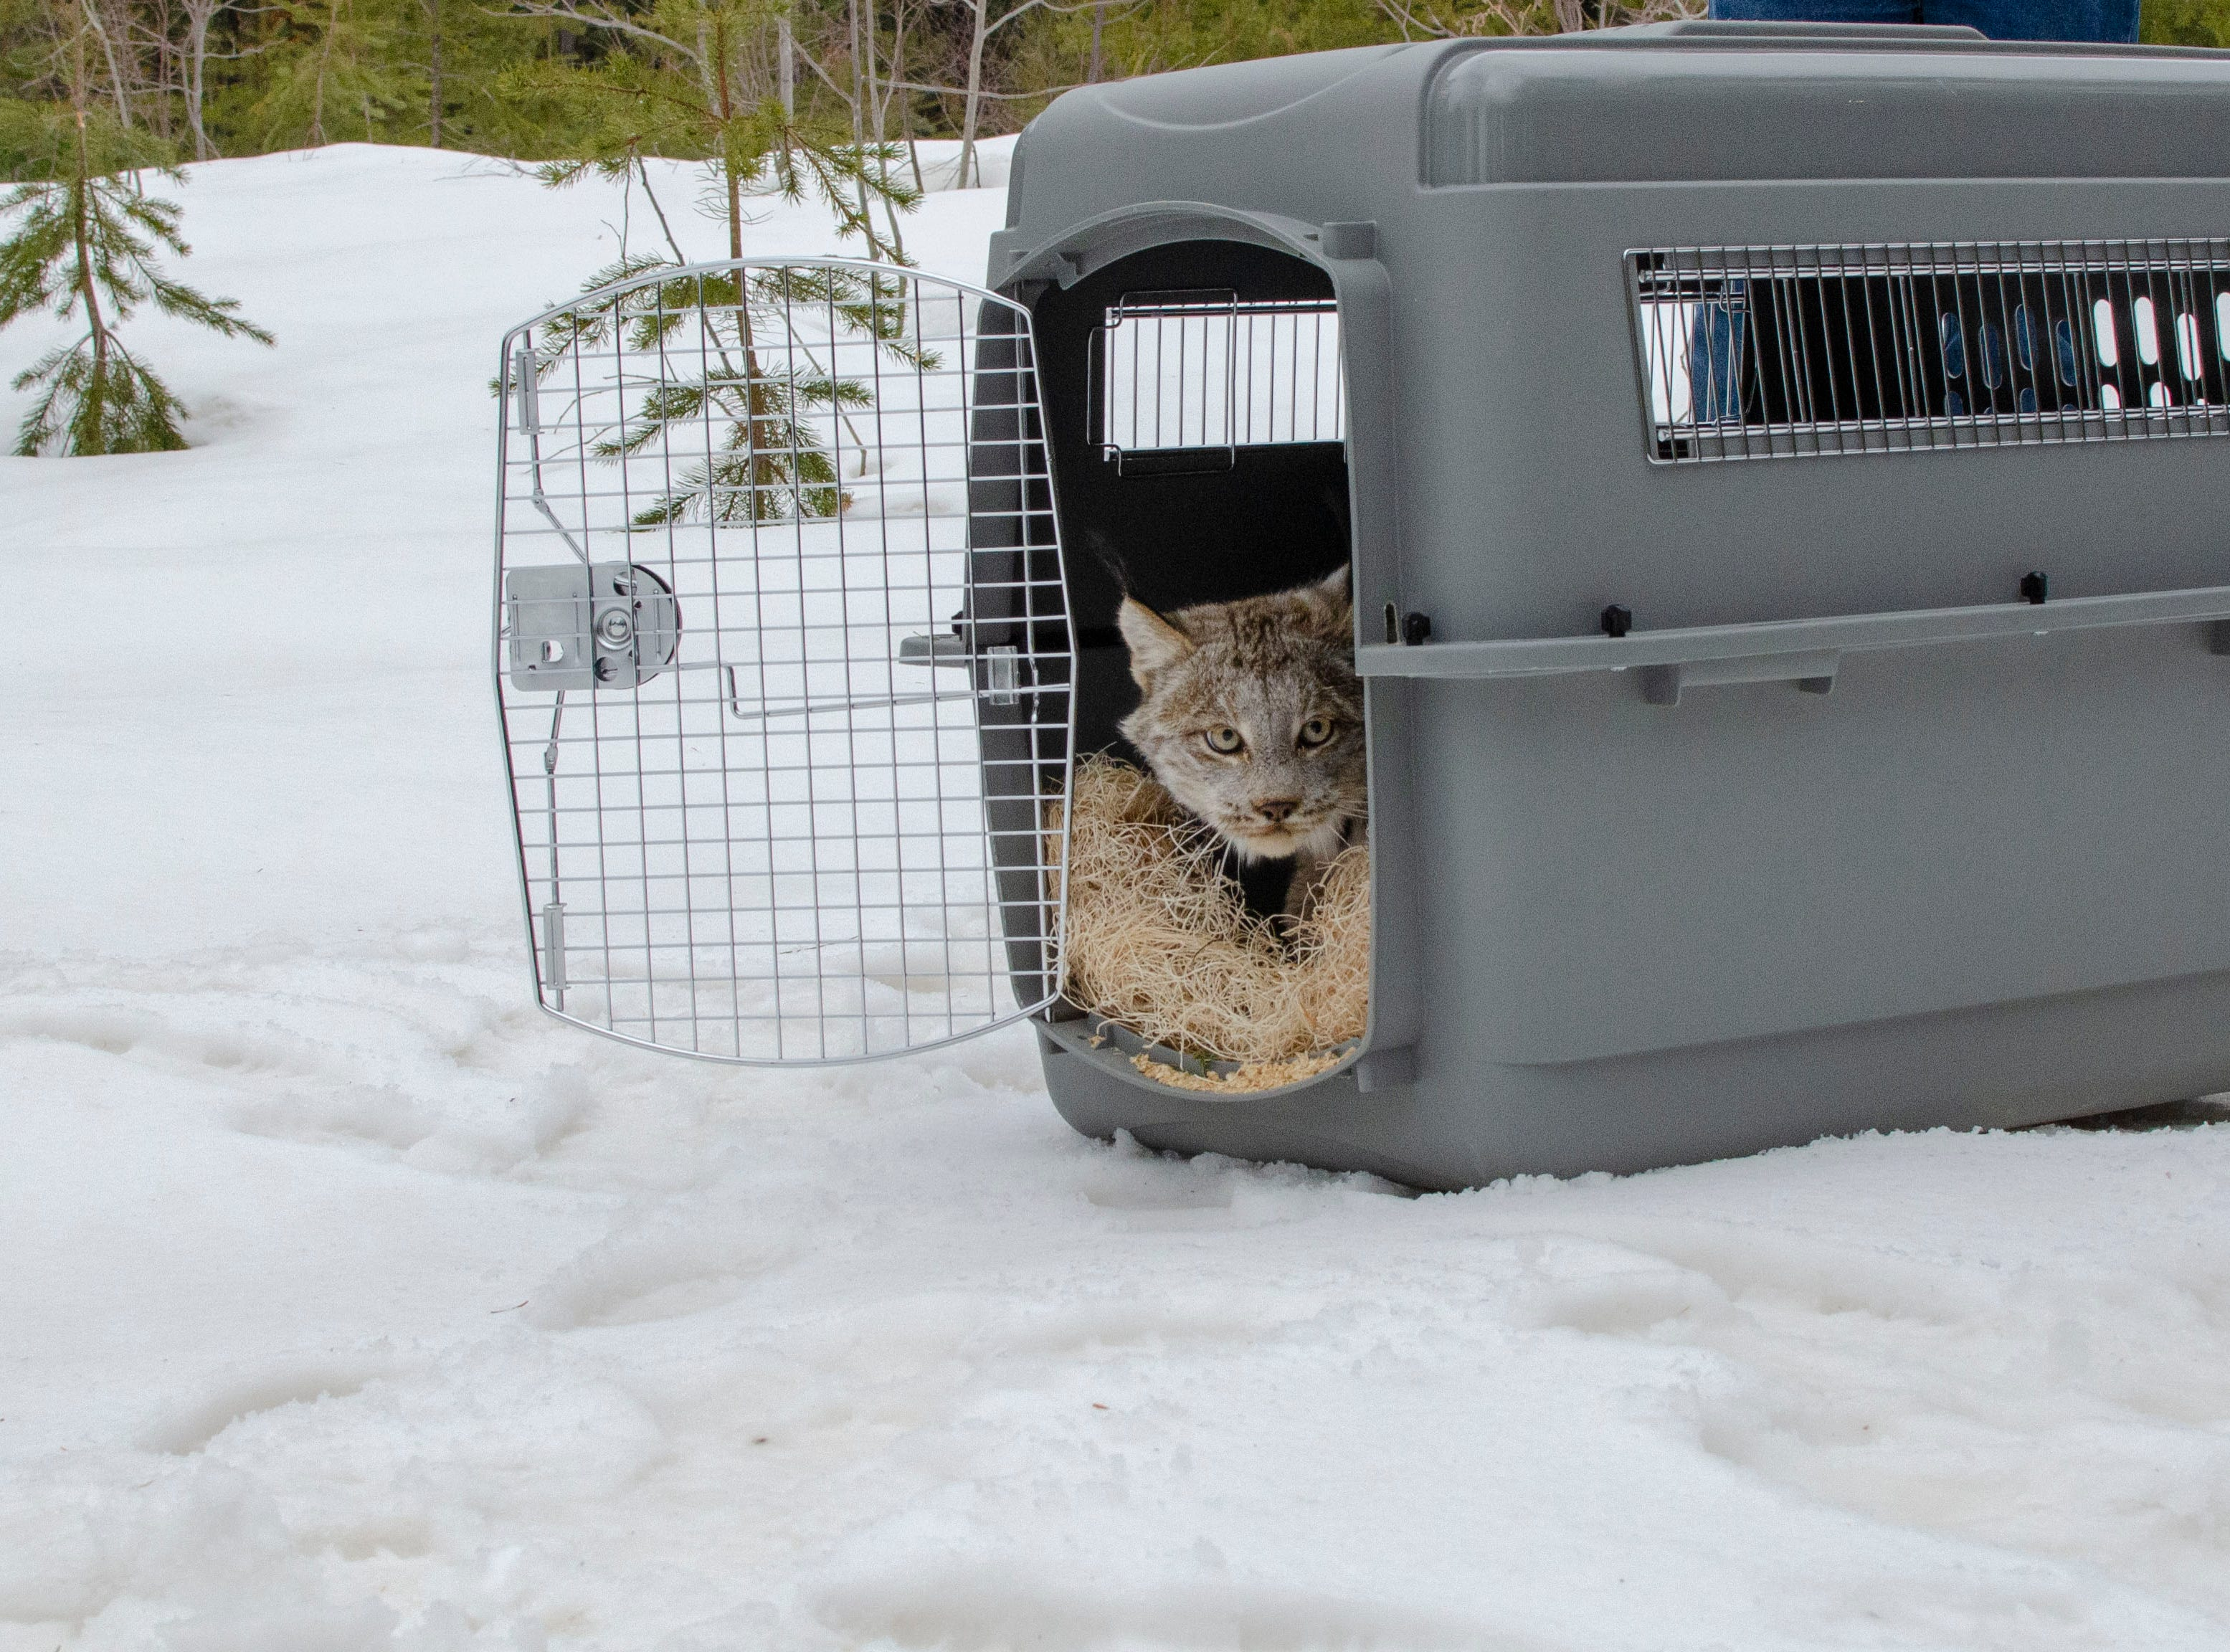 A female lynx looks cautiously outside of her wildlife carrier before trotting off to freedom in Schoolcraft County.